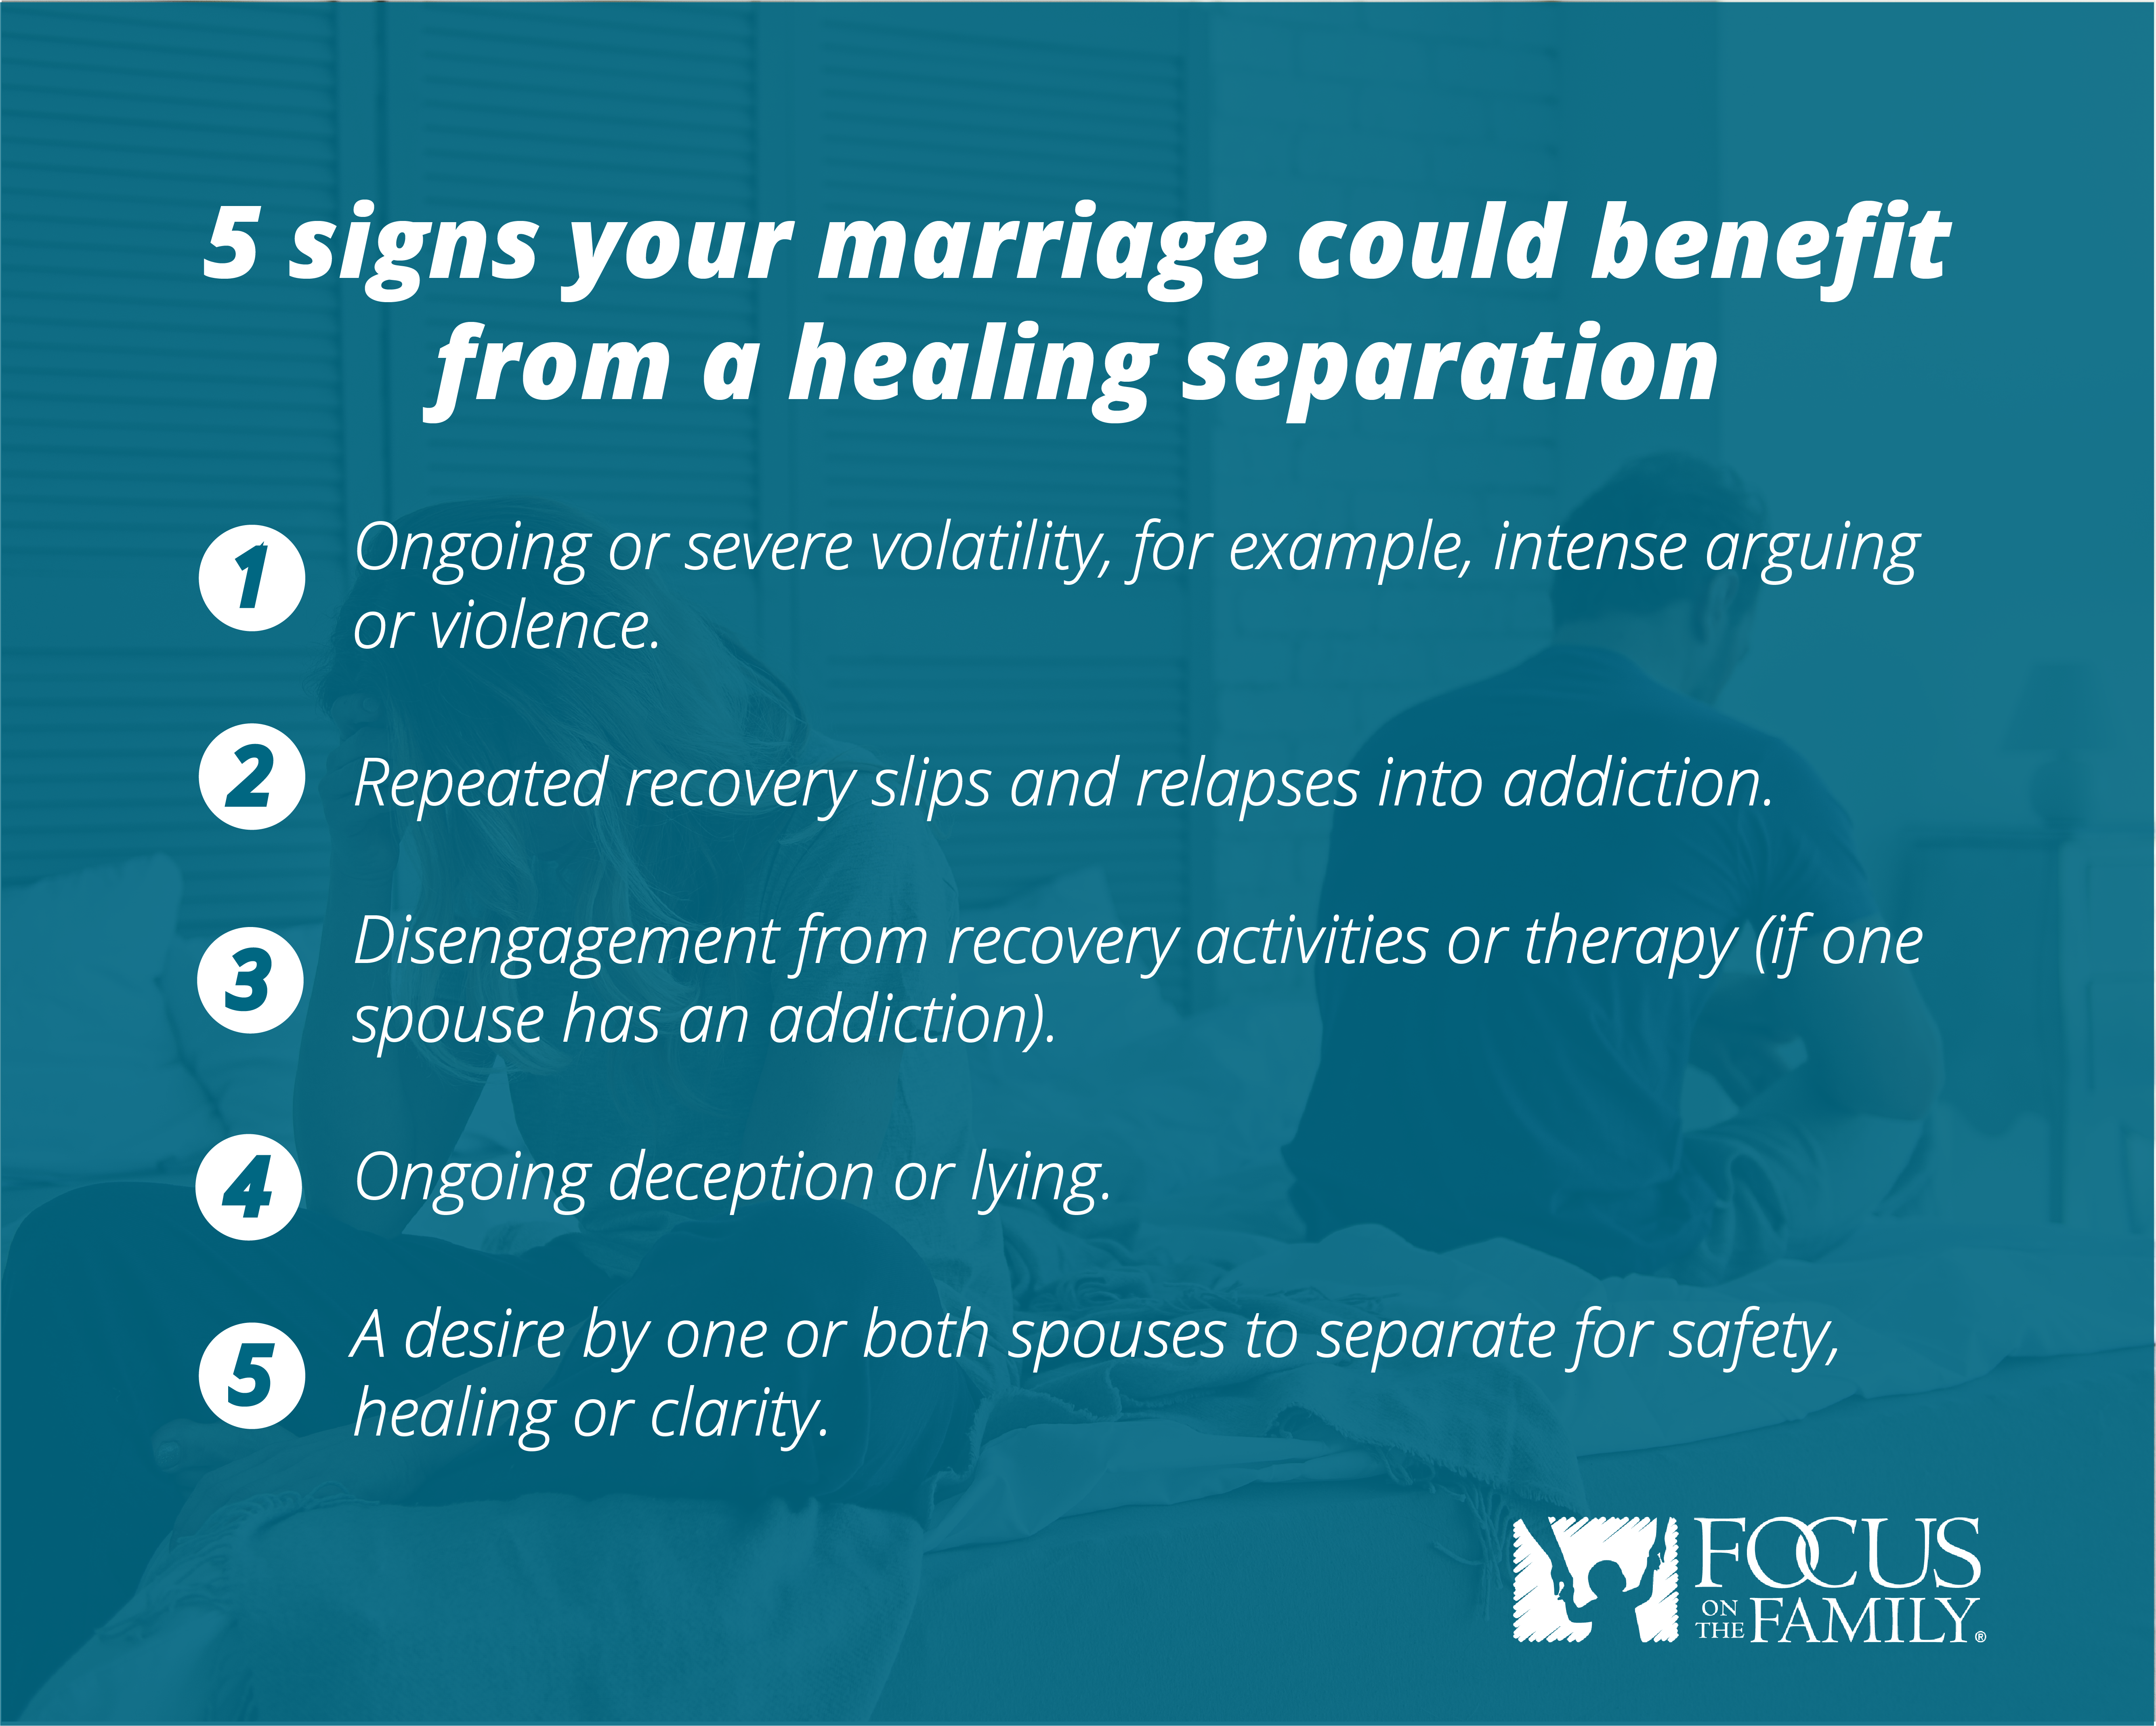 signs-your-marriage-could-benefit-from-healing-separation